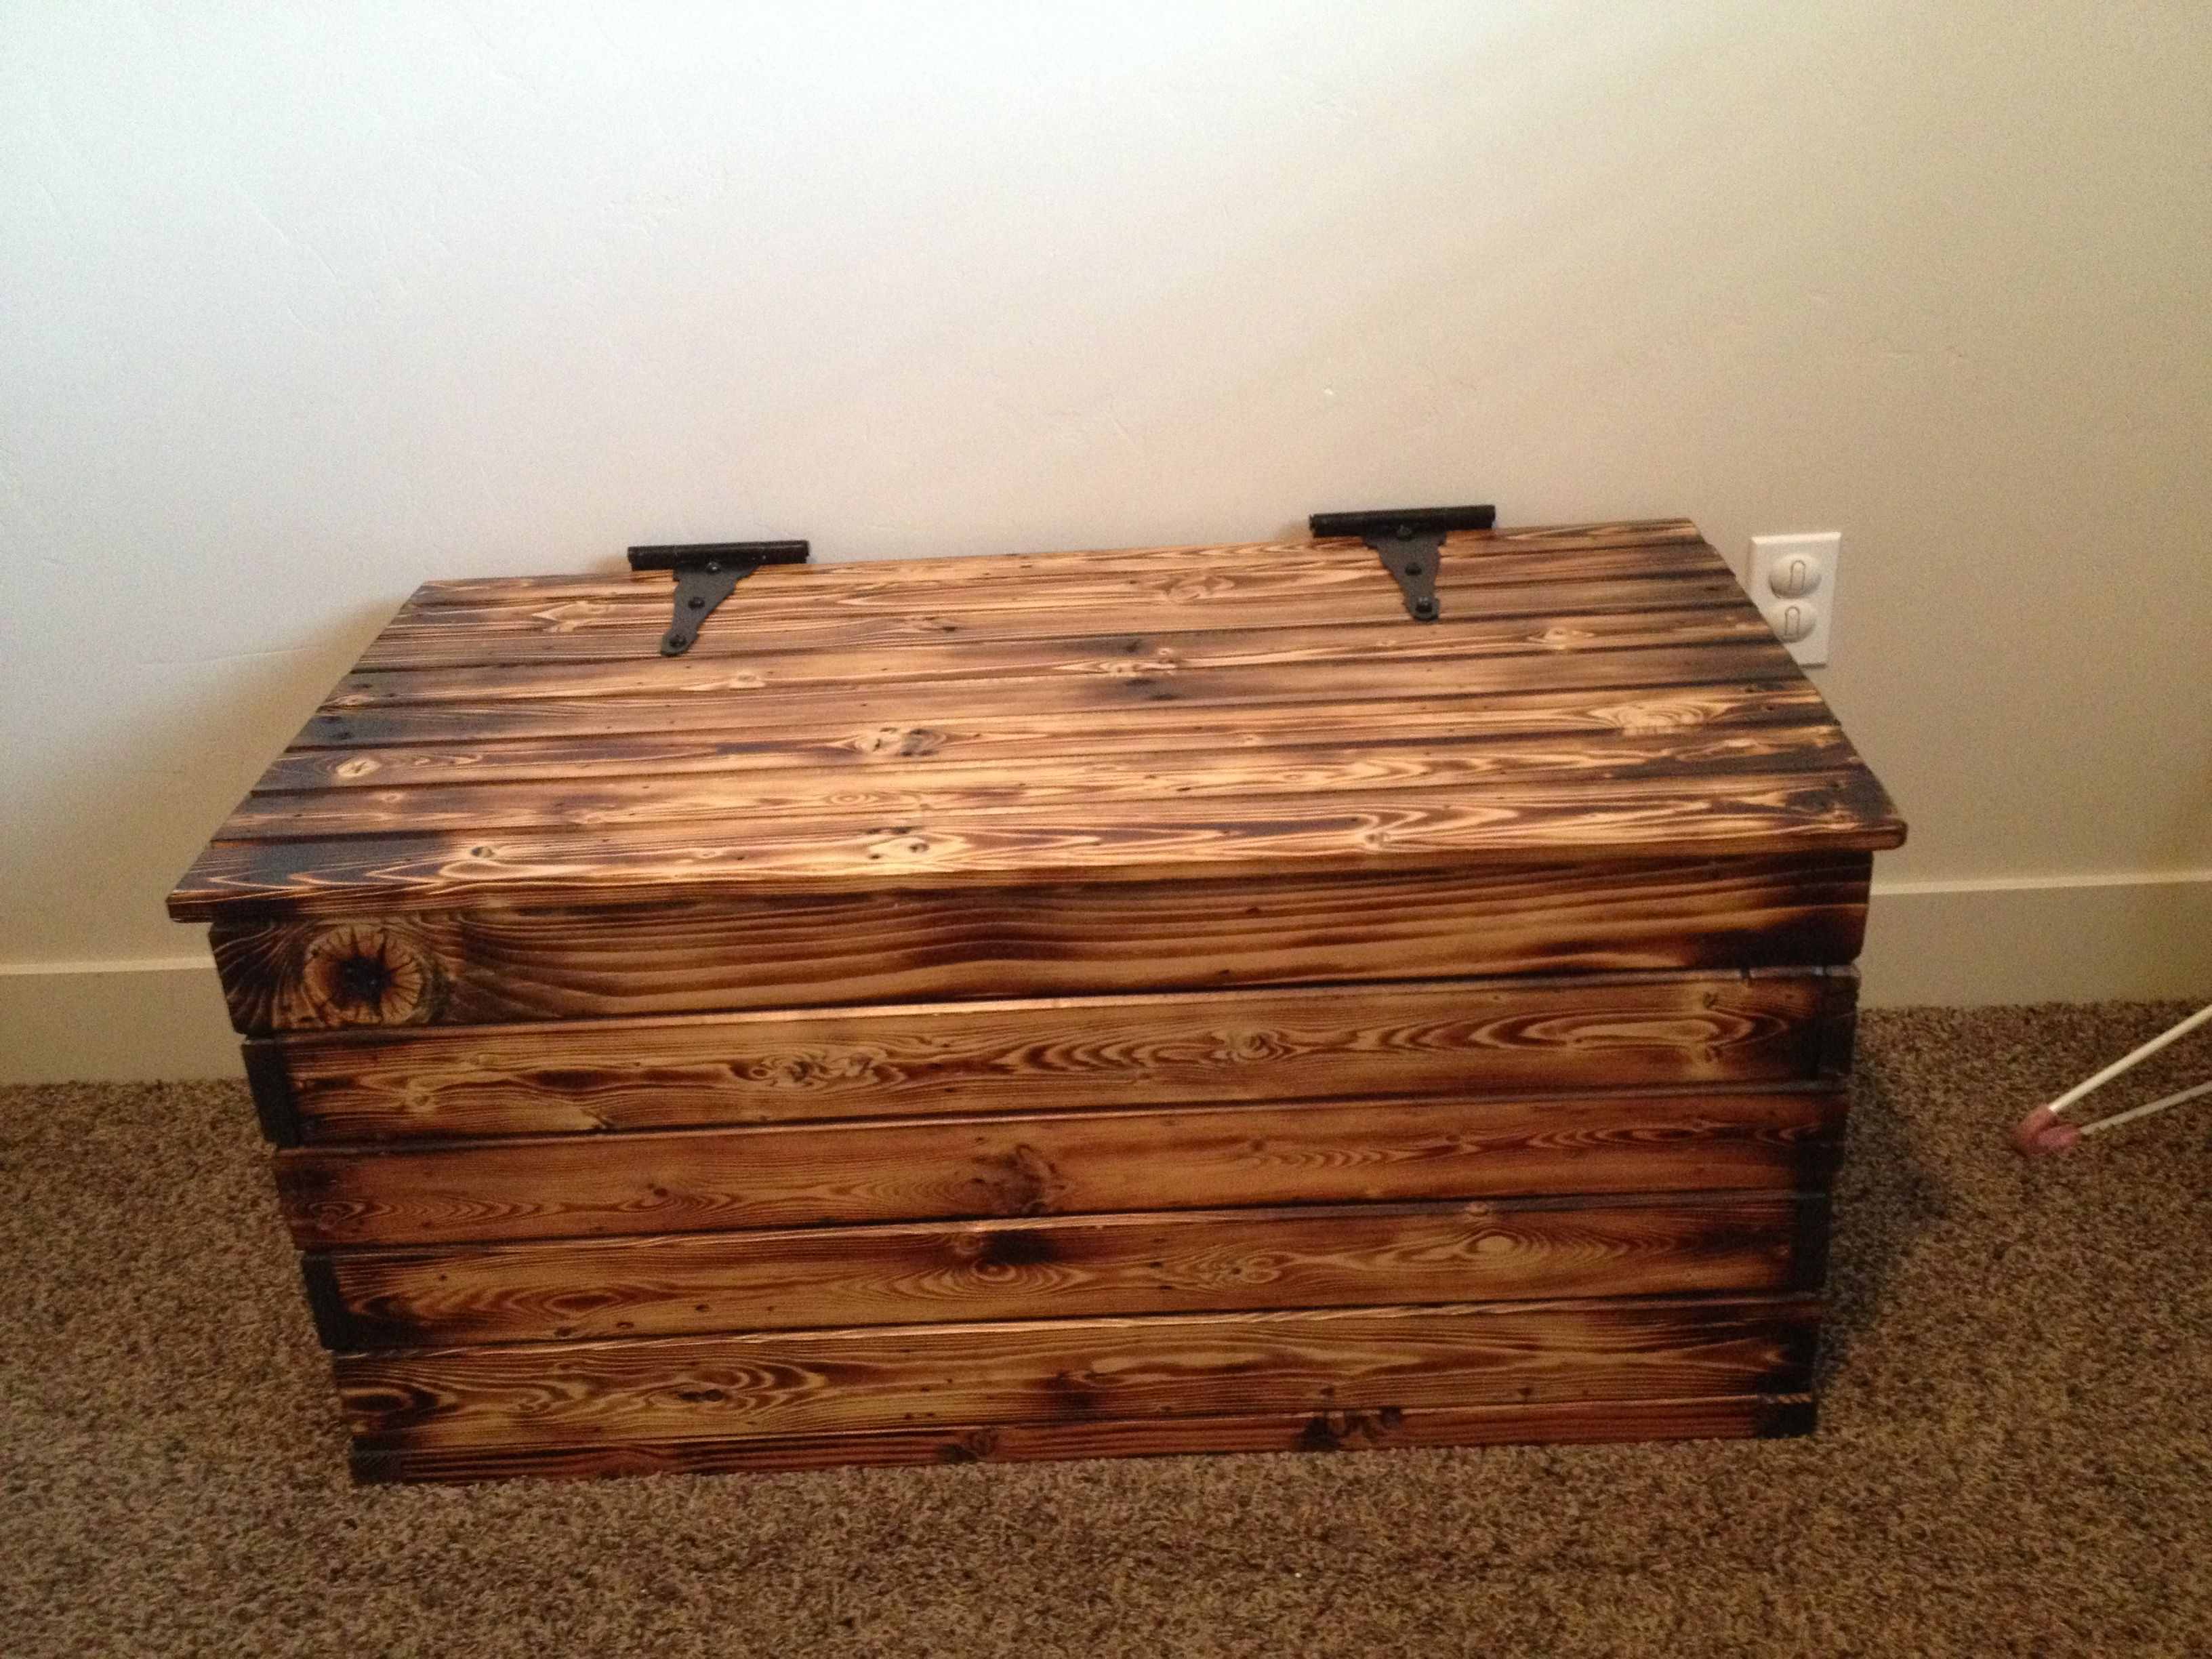 Diy Toy Box Made From Old Pallets Blow Torched And Glazed Wood Toy Box Pallet Toy Boxes Wooden Toy Boxes